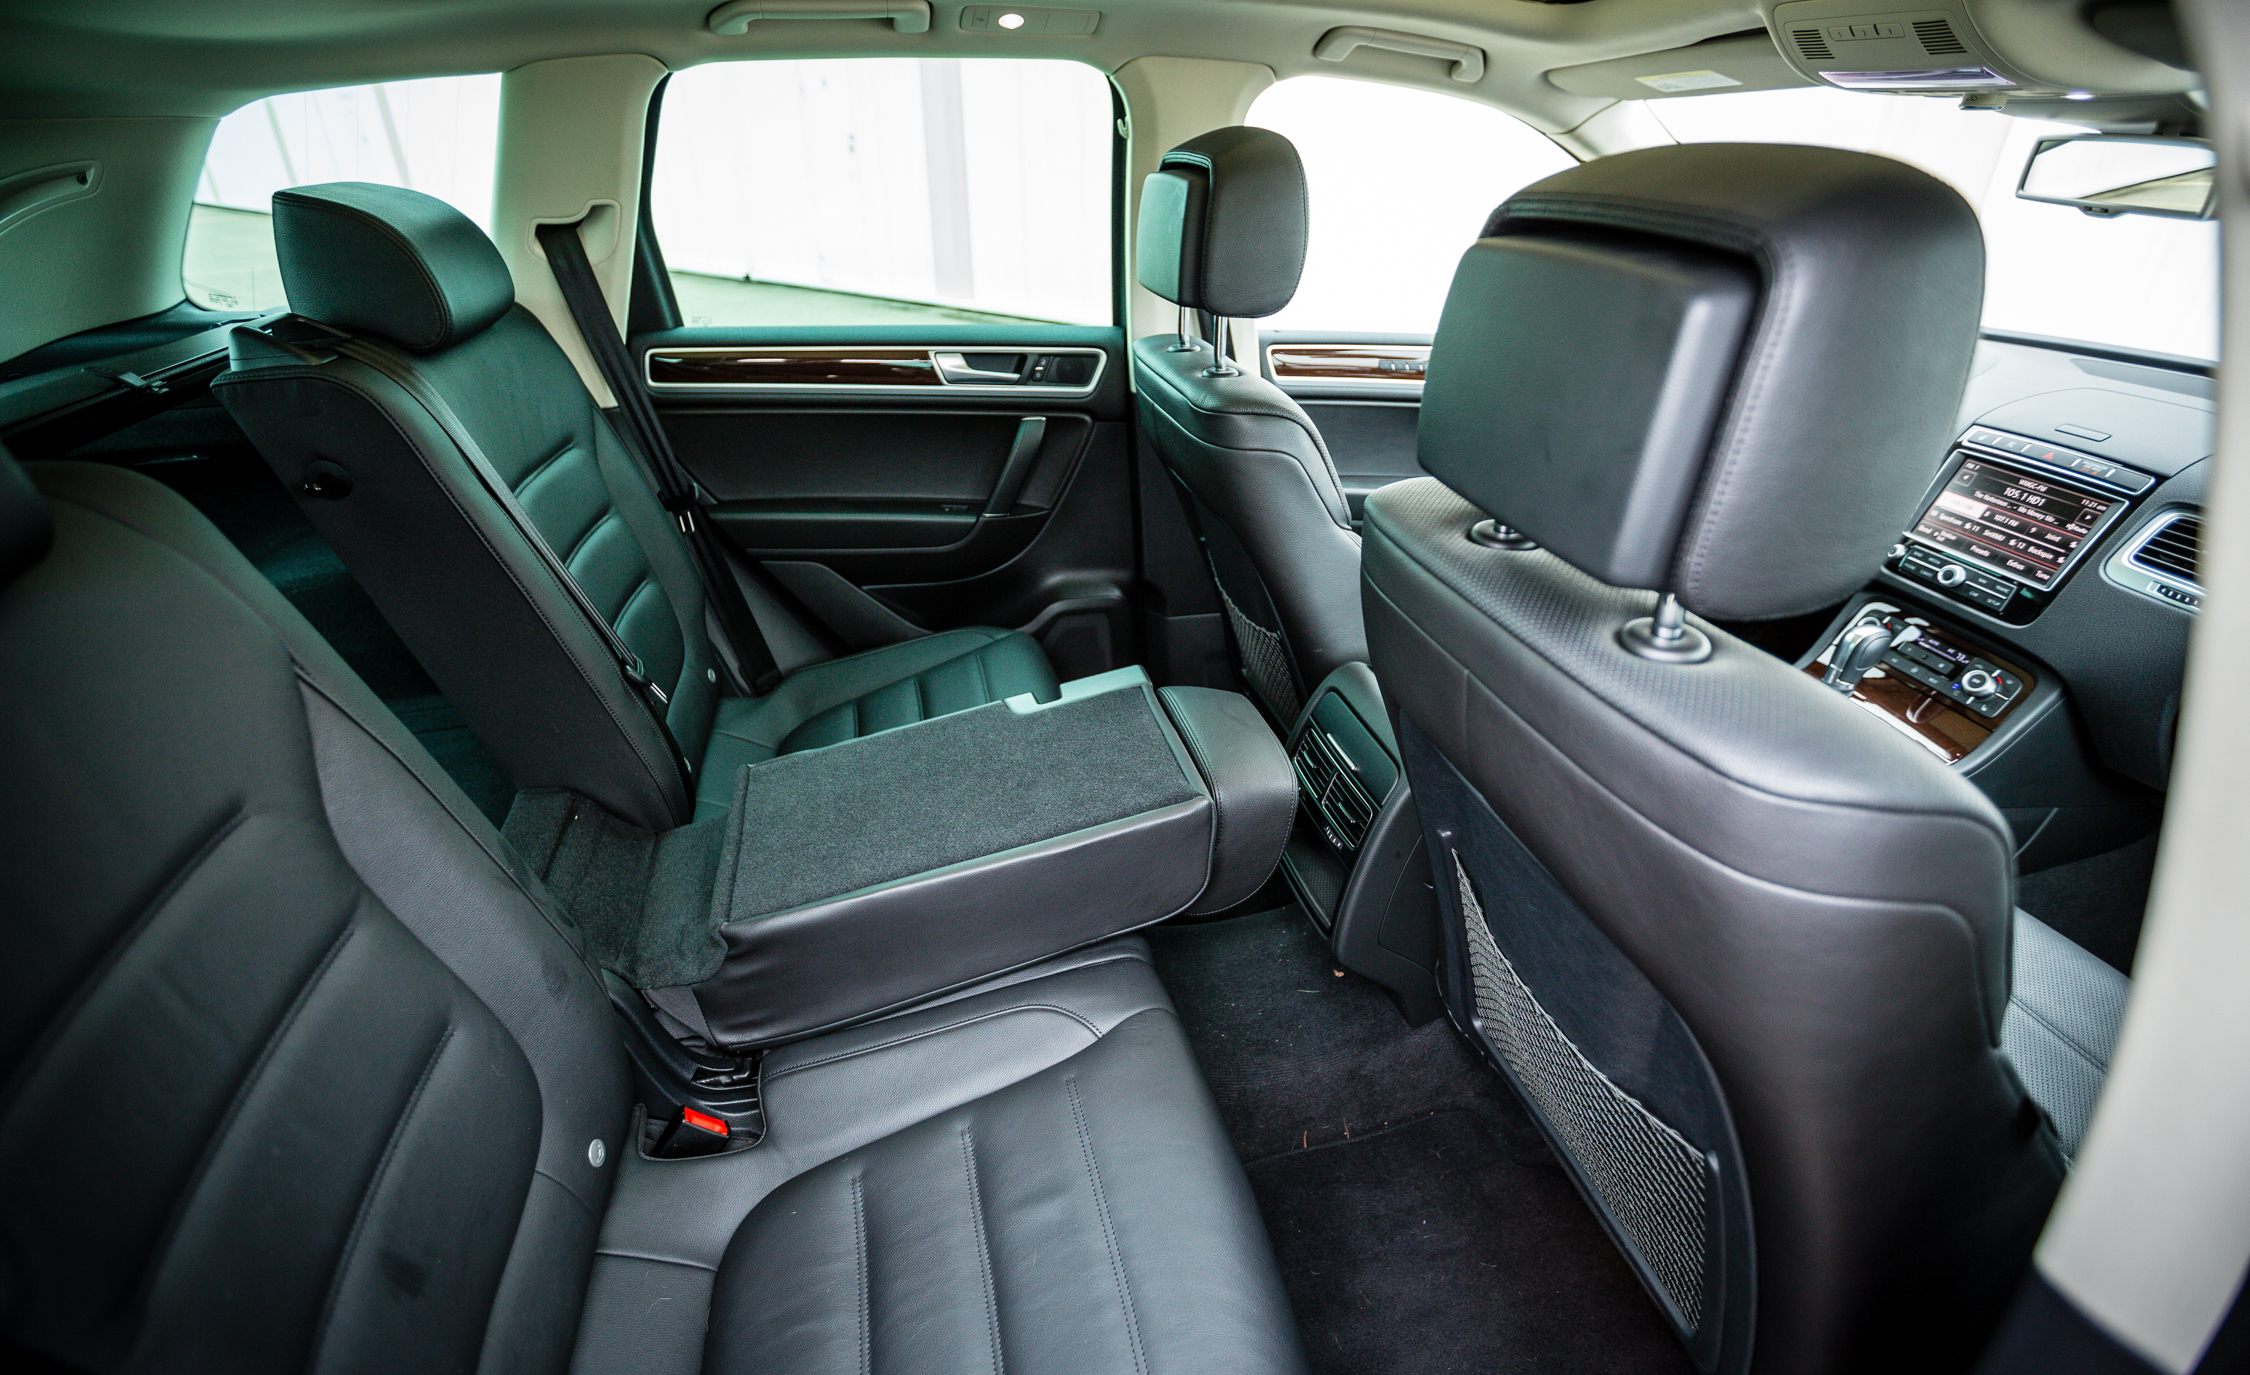 2016 Volkswagen Touareg Interior Seats Rear (View 9 of 16)